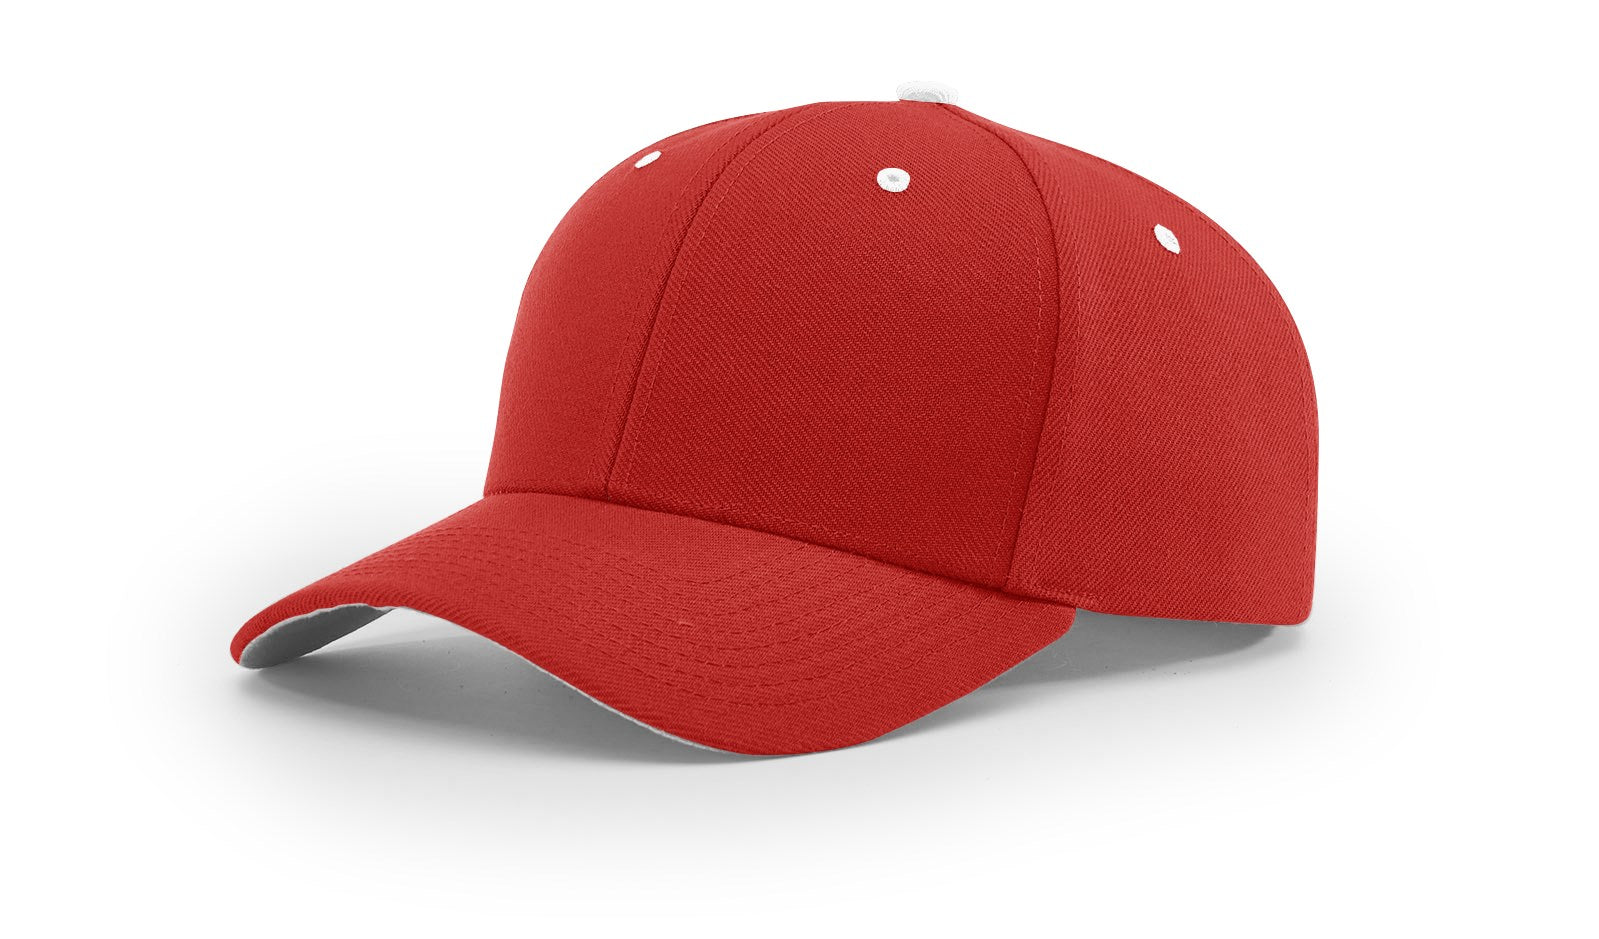 Richardson 514 Strap back Contrast colors Embroidery Available 8 Colors